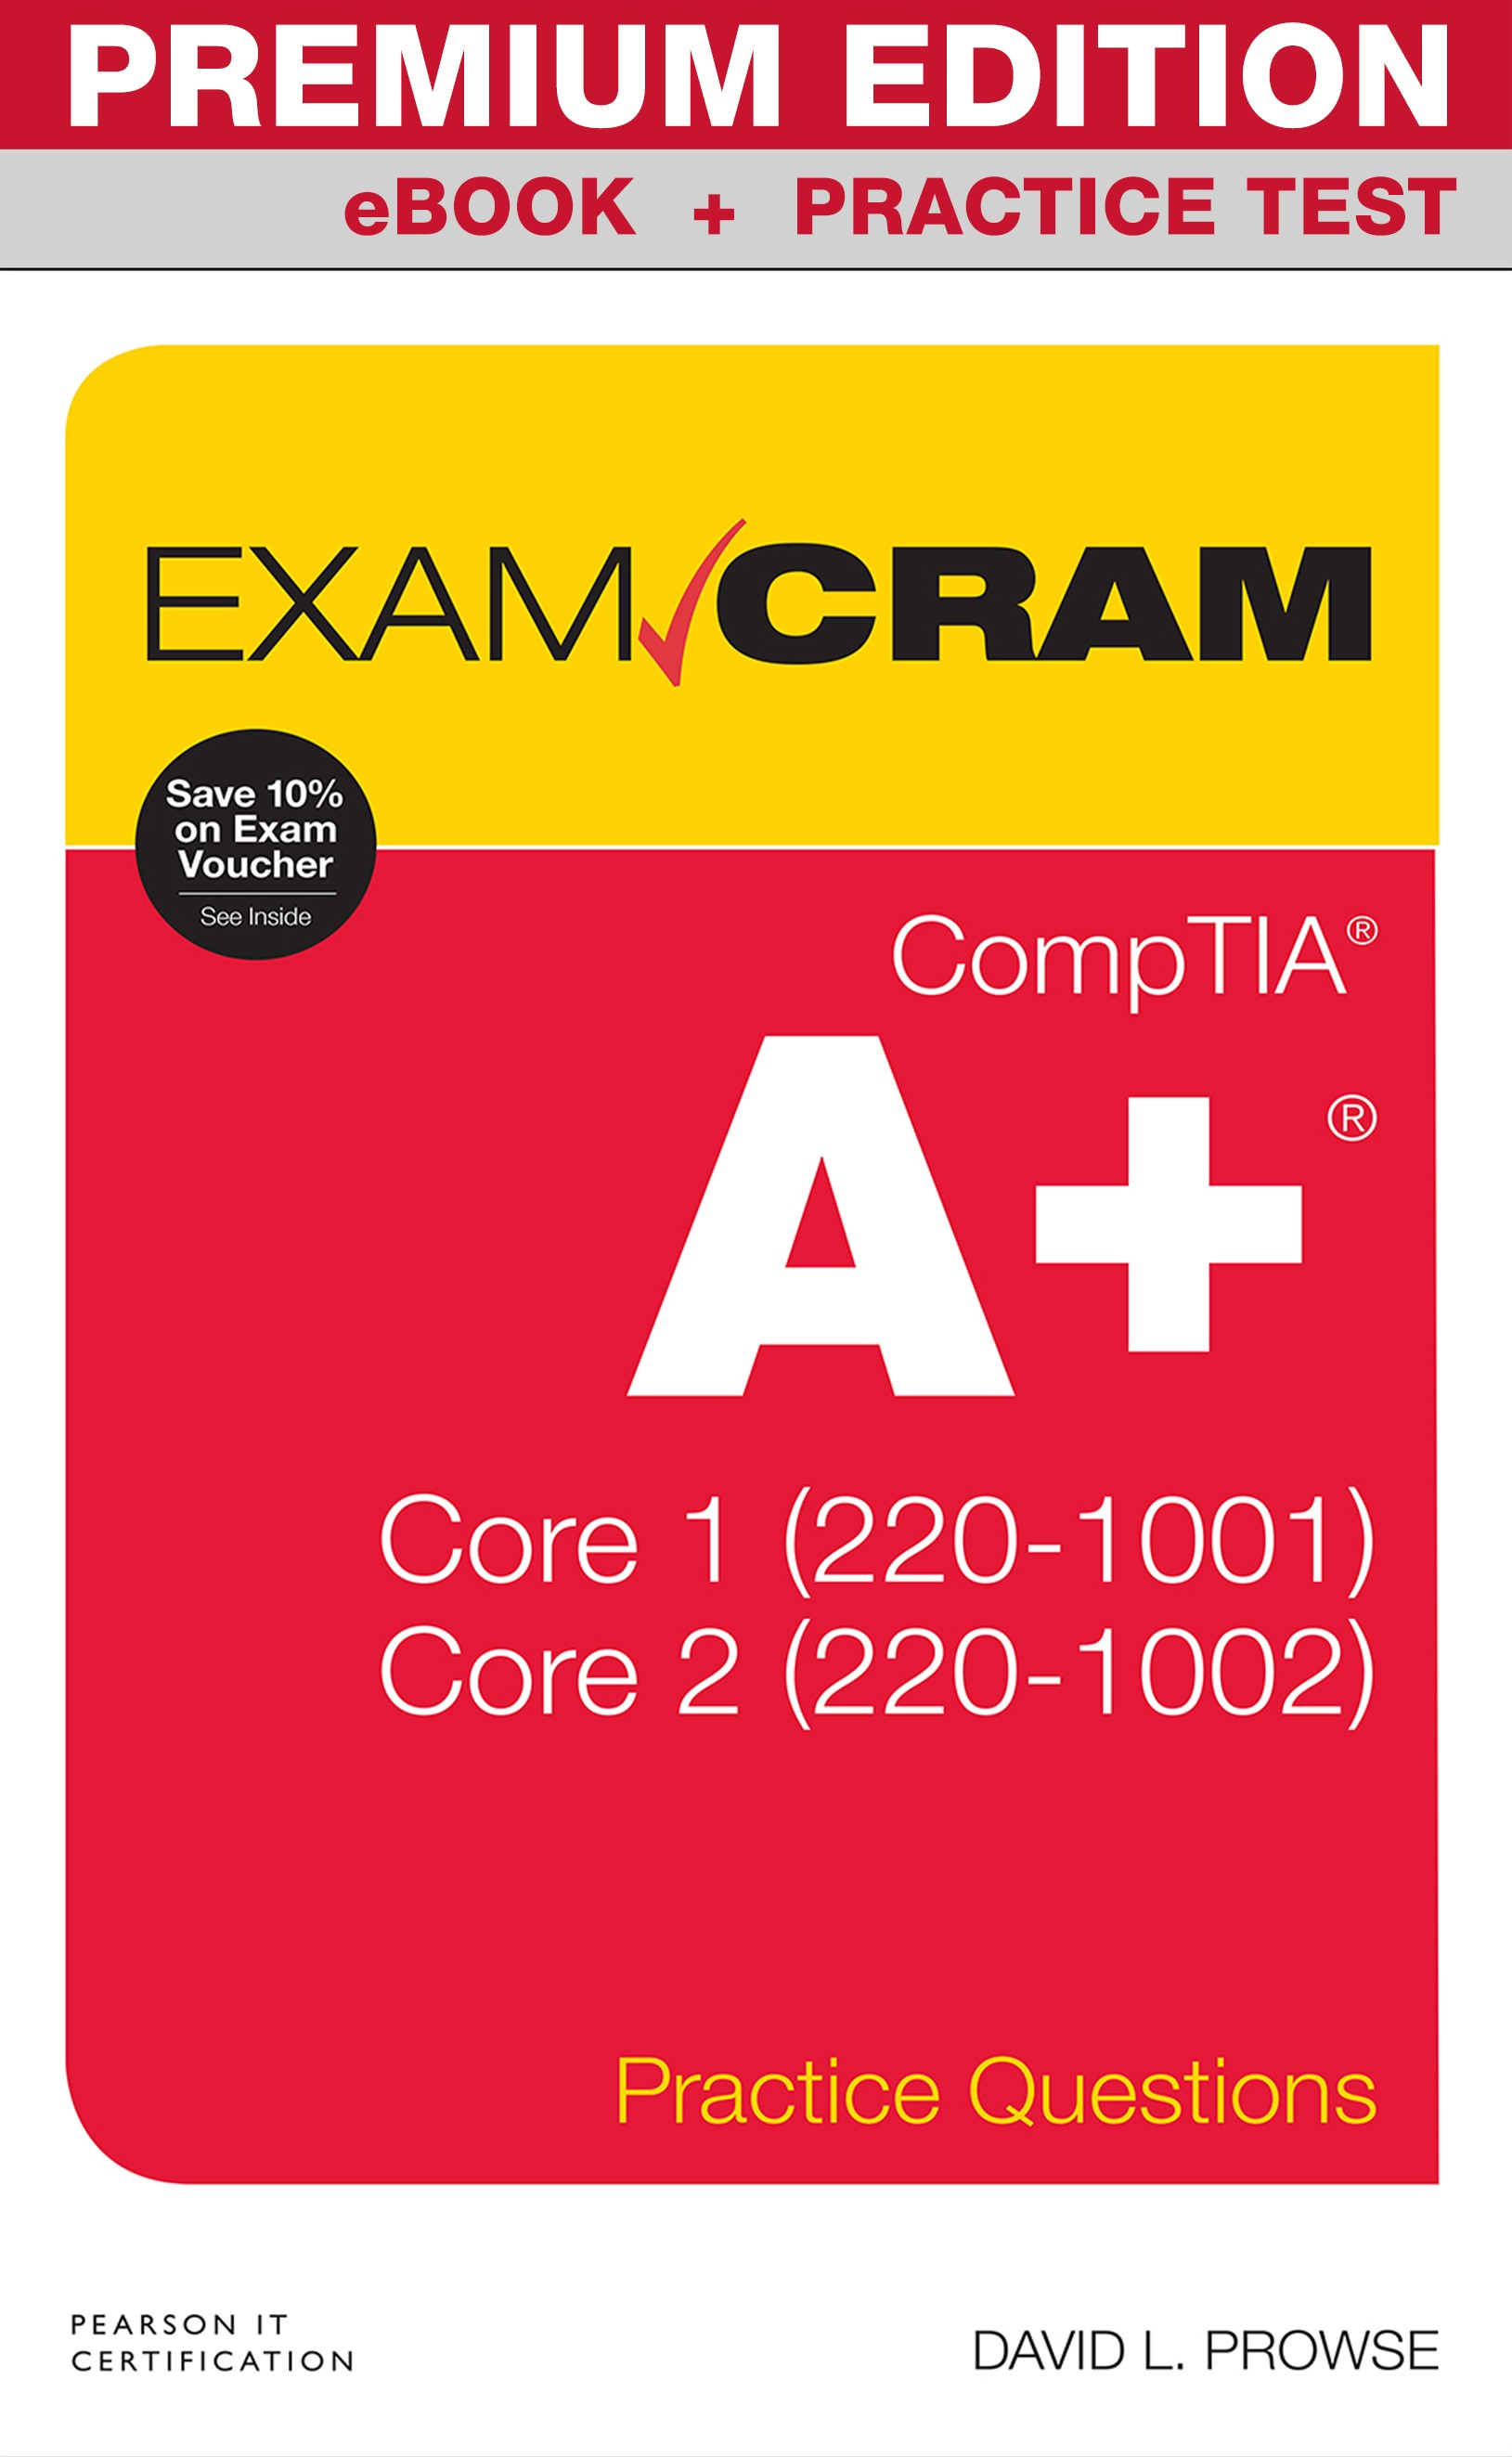 CompTIA A+ Practice Questions Exam Cram Core 1 (220-1001) and Core 2 (220-1002) Premium Edition and Practice Test